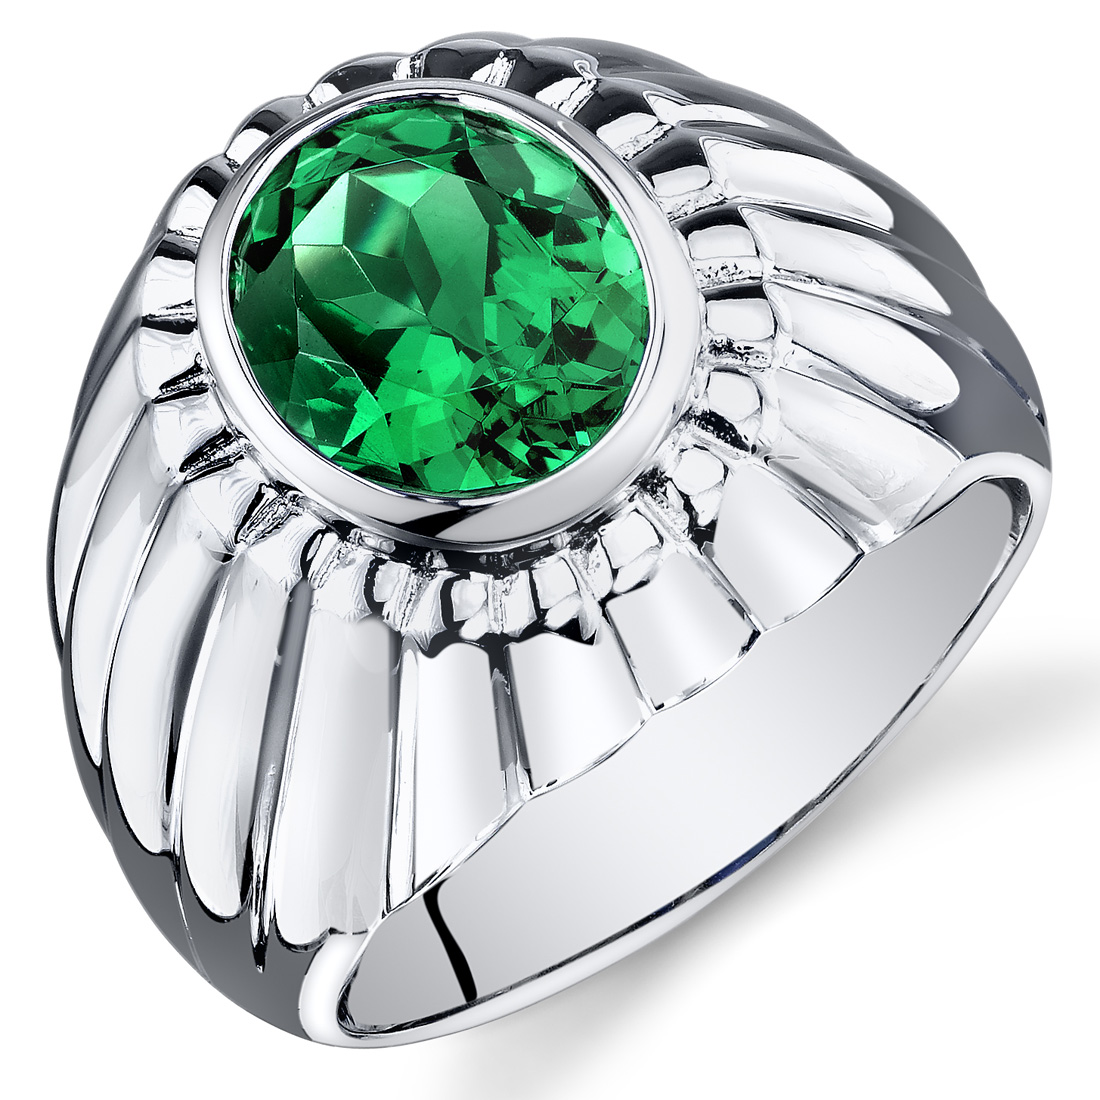 Peora 3.75 Ct Men's Created Emerald Engagement Ring in Rhodium-Plated Sterling Silver